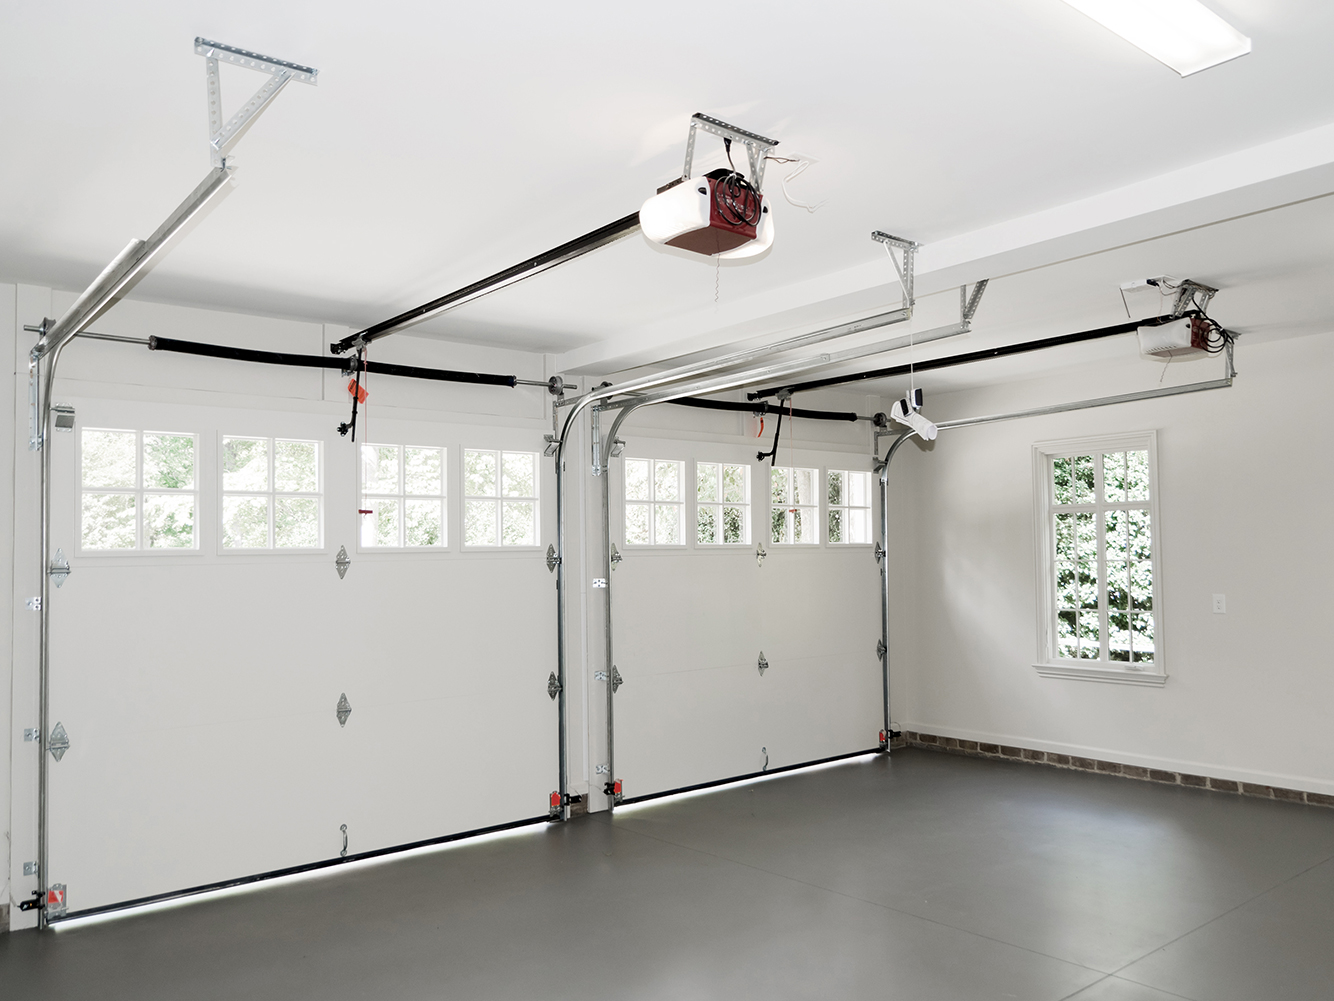 Jdt garage door service mesa az garage door repair for Door installation